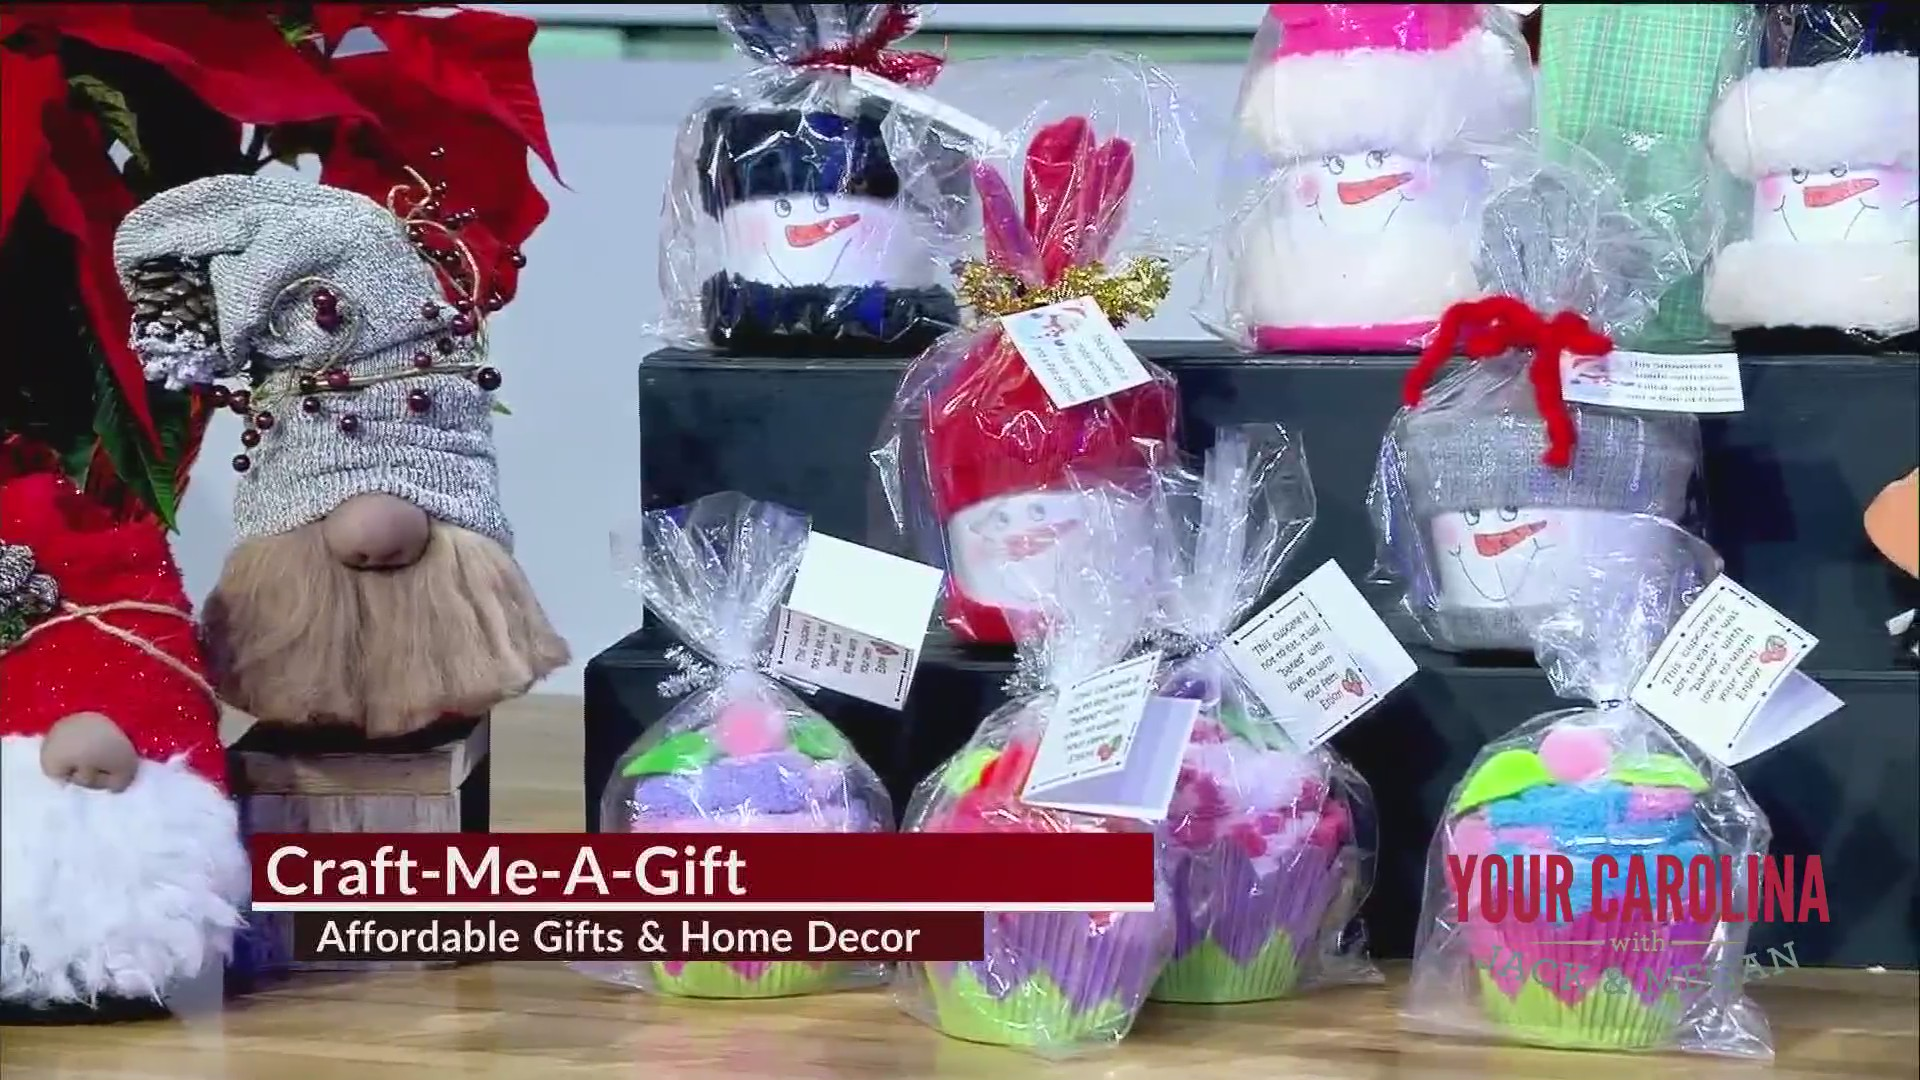 Craft-Me-A-Gift